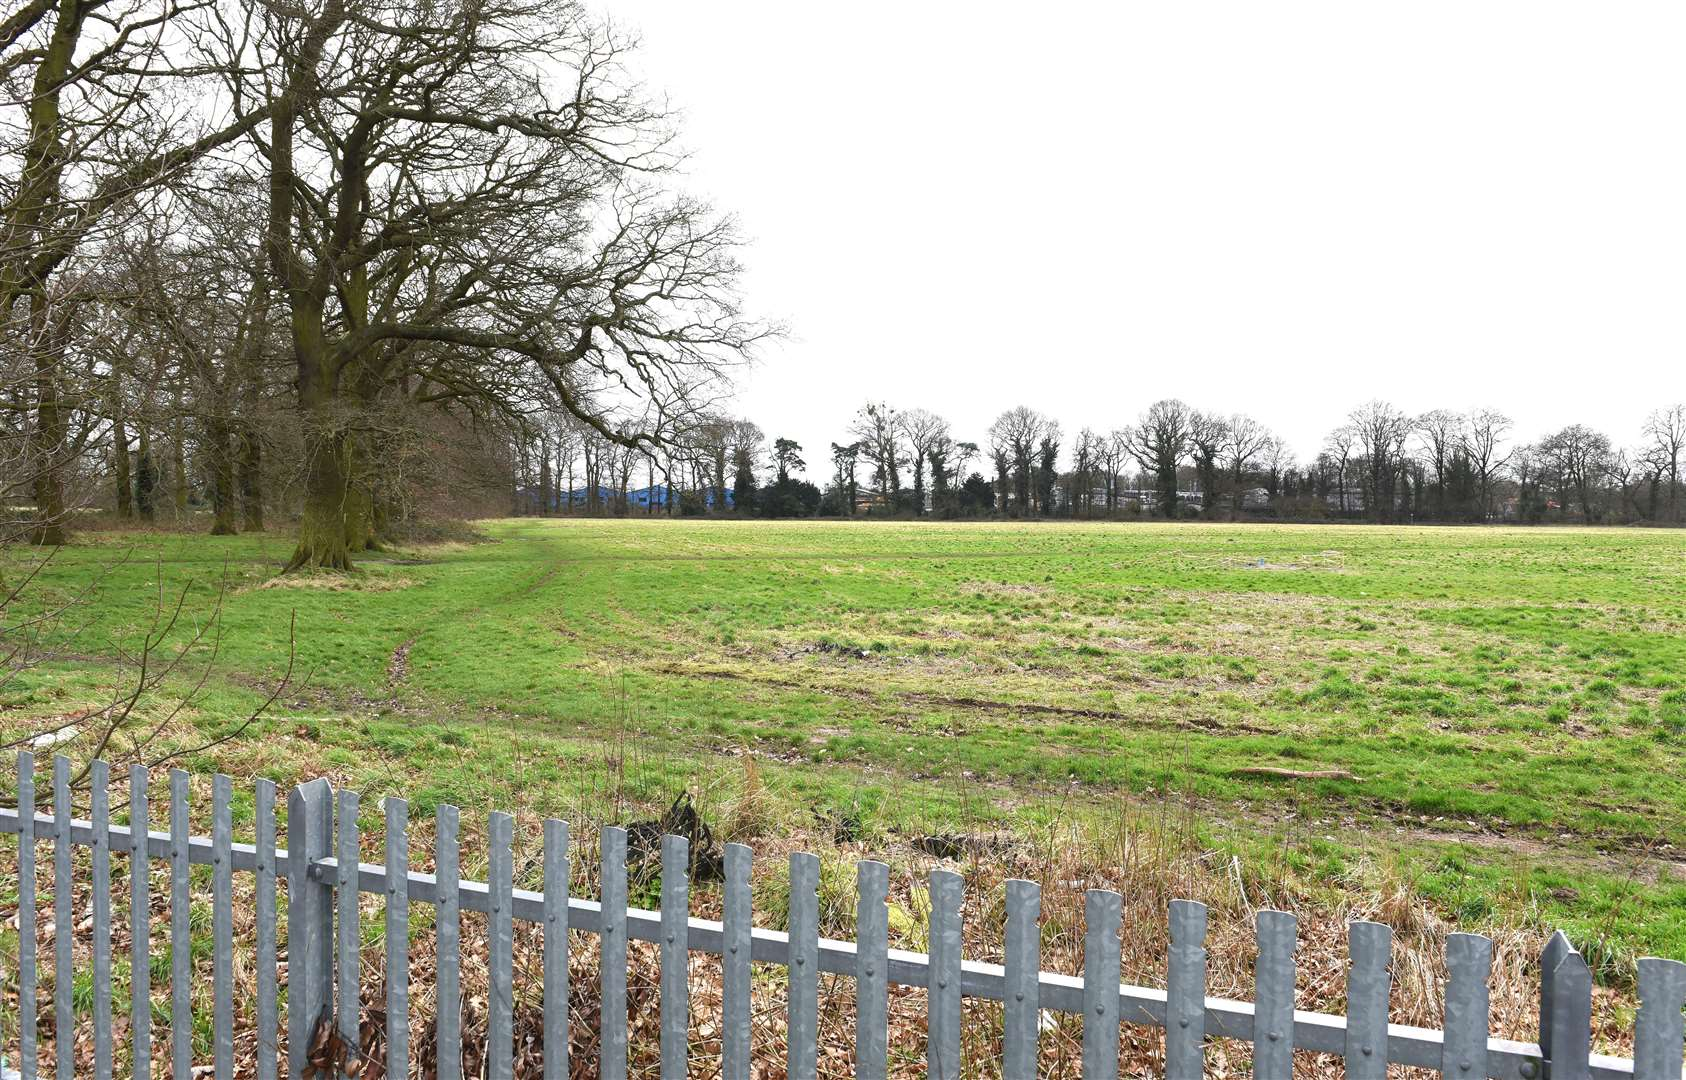 GV Picture of Land which is being Proposed for Possible New Housing Development for the Gaywood Area...Land between King's Lynn Academy Site off Queen Mary Road/Parkway Gaywood and Howard Junior School. (45317510)